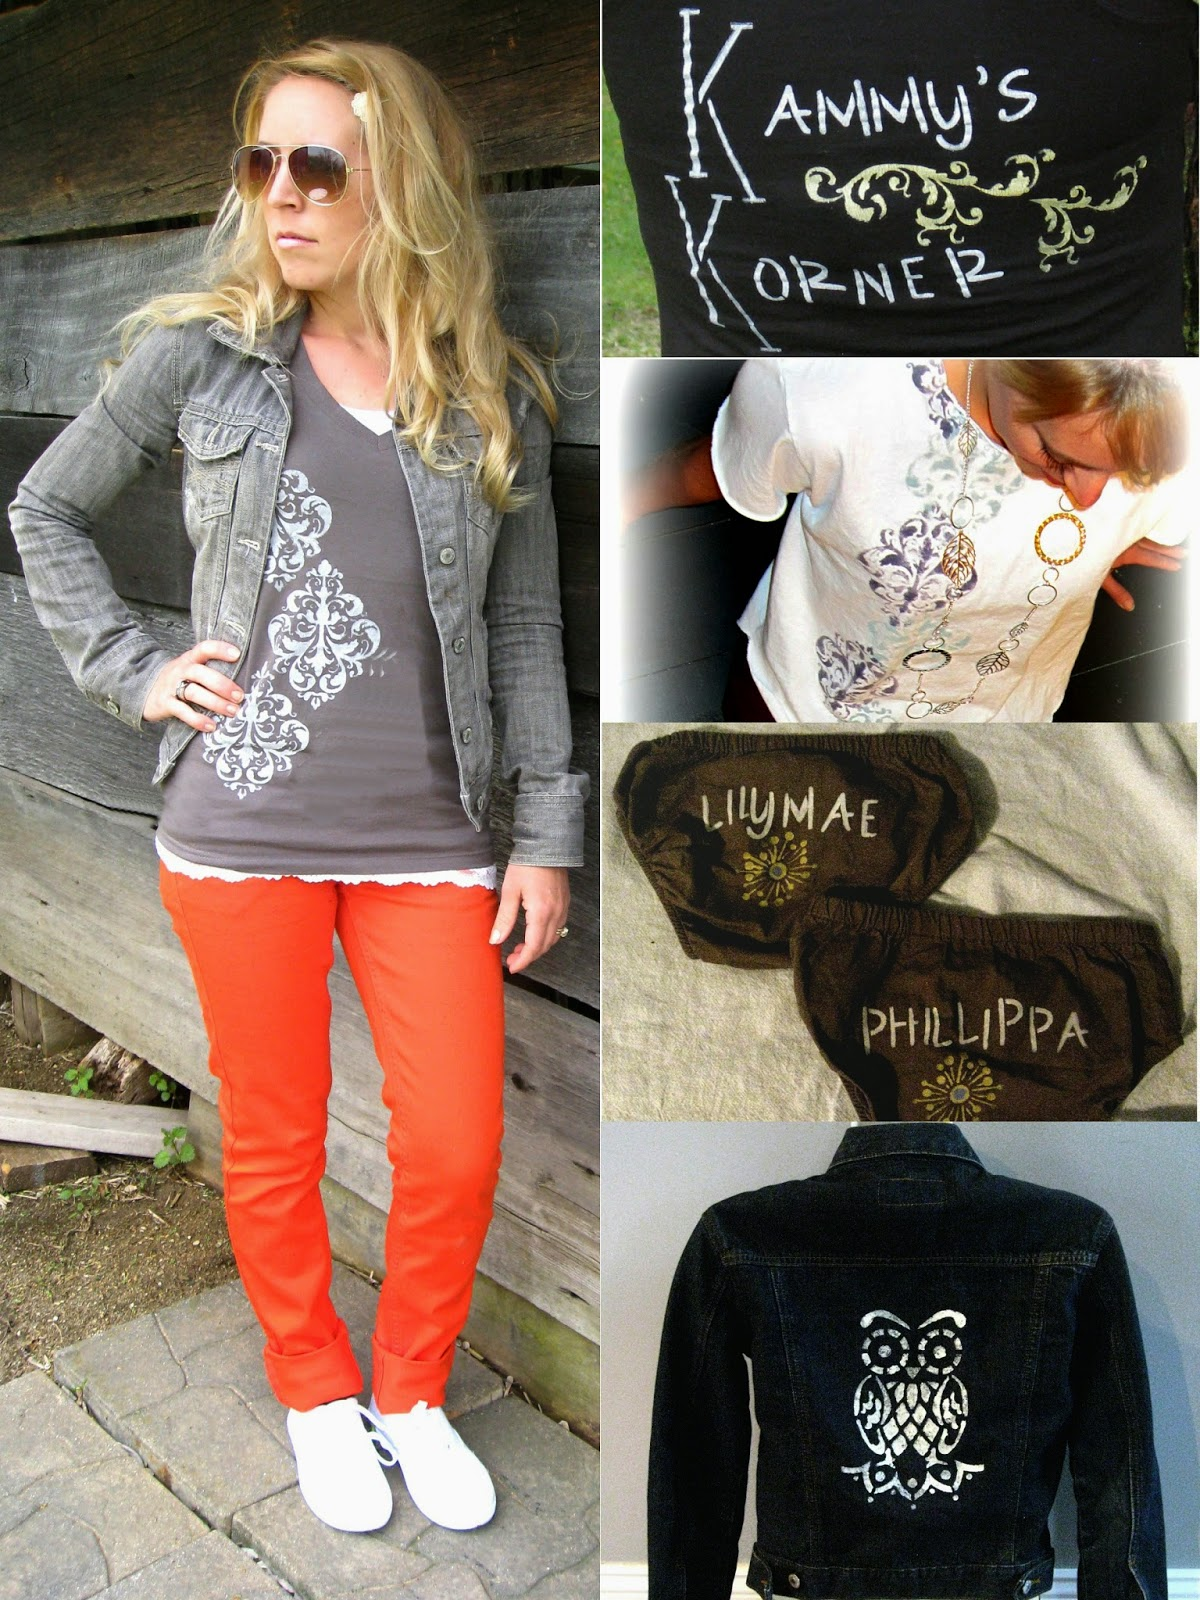 Kammy stenciled clothes